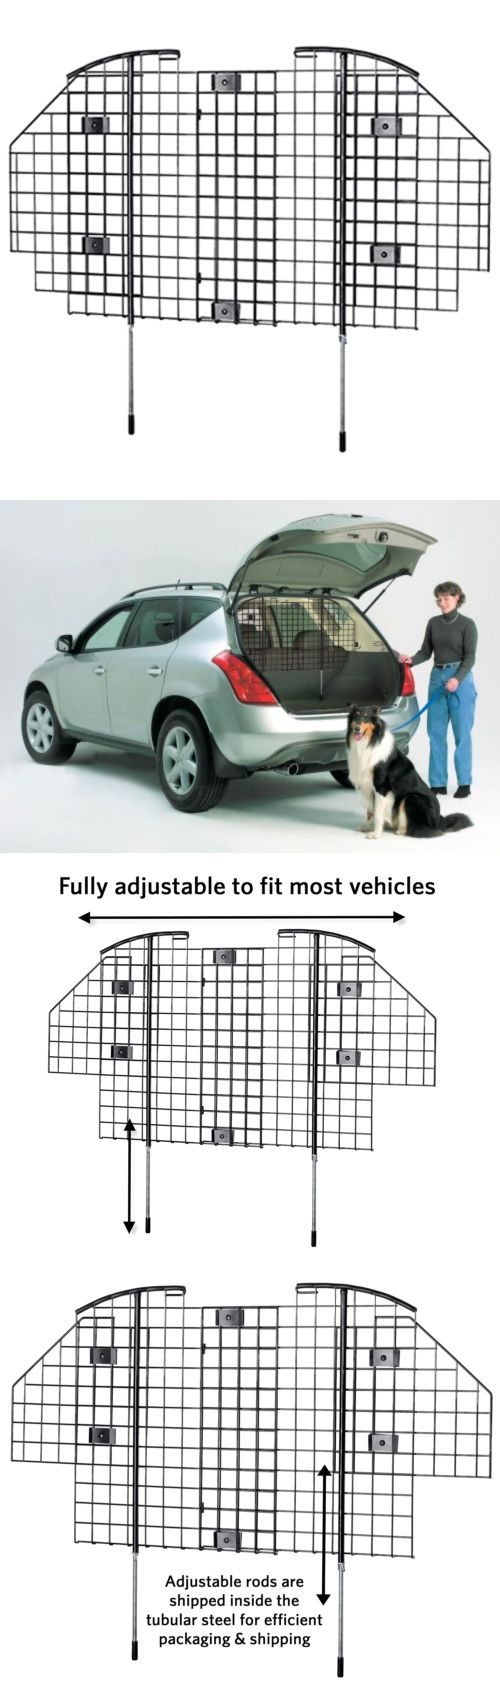 Car Seats and Barriers 46454: Dog Barrier For Suv Restraint For Car Van Vehicle Gate Universal Pet Cage Travel -> BUY IT NOW ONLY: $59.39 on eBay!